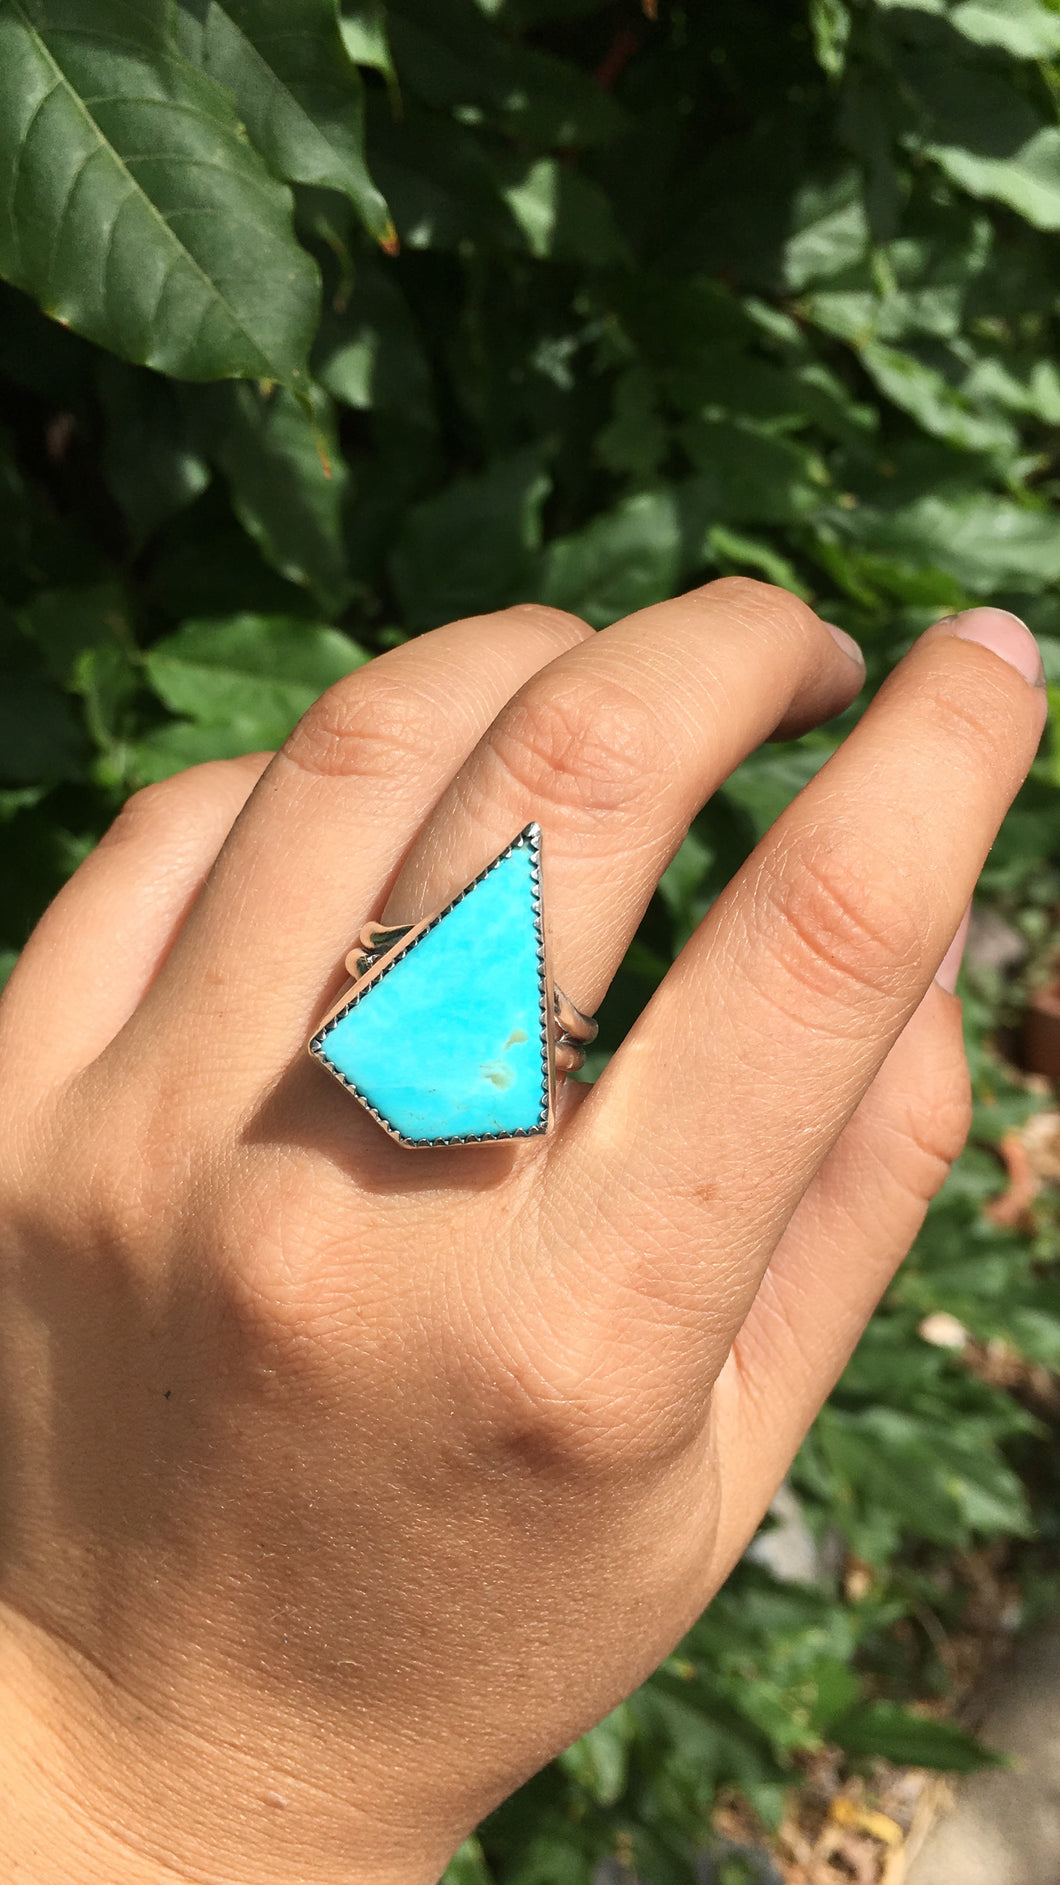 Kingman turquoise kite ring - size 10